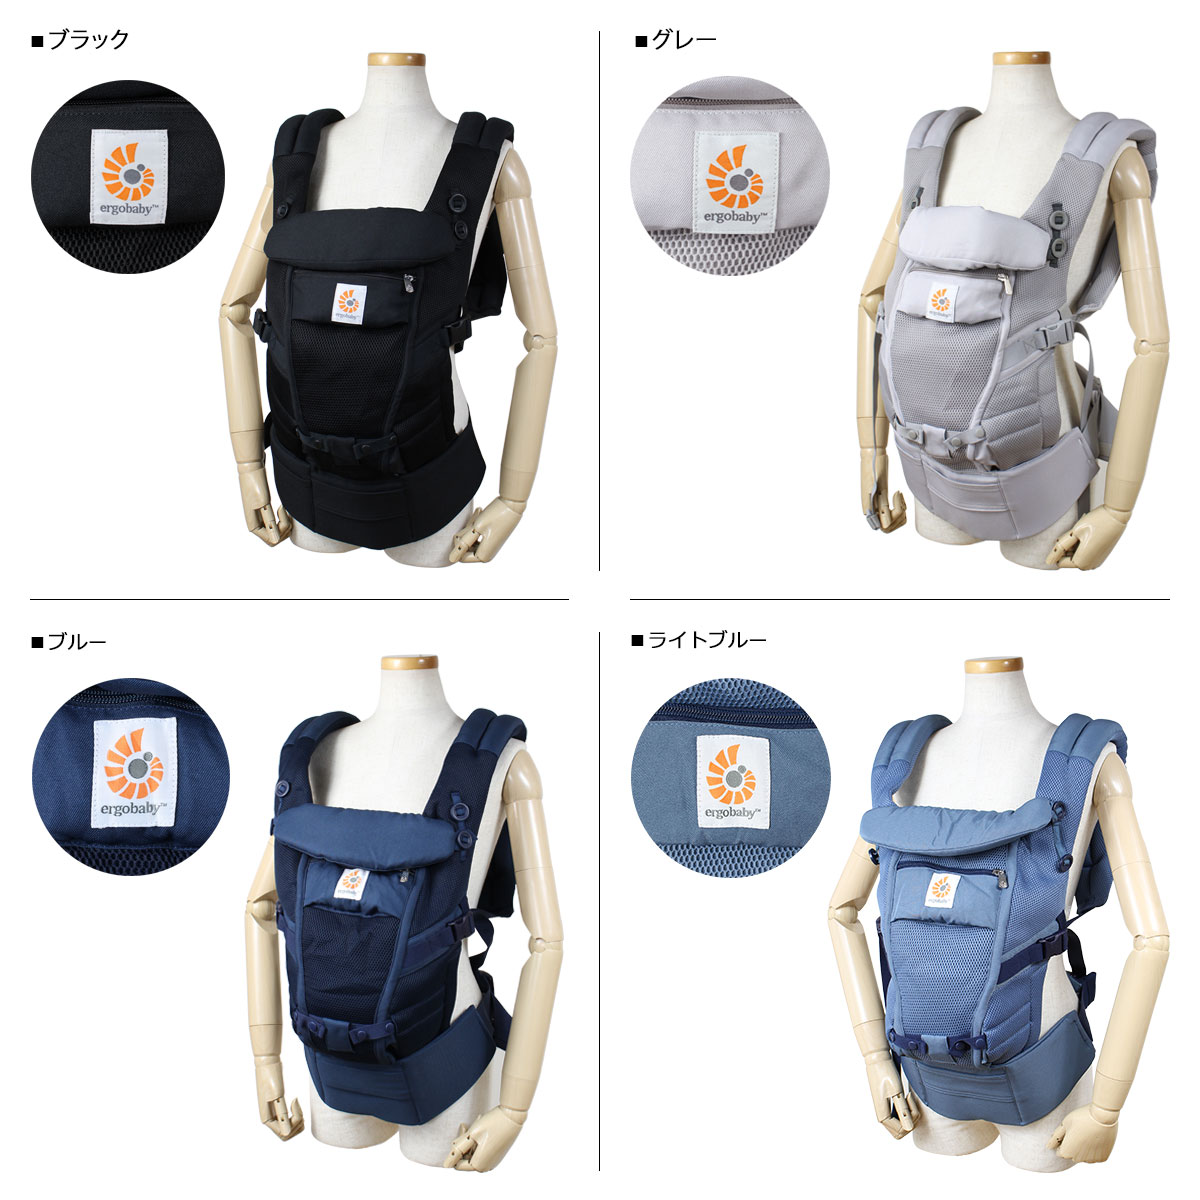 Ergobaby Adapt Baby Carrier Cool Air Mesh エルゴベビーエルゴ Cuddle String Adapt Cool Air Baby Carrier Newborn Baby Bcpeap 7 25 Reentry